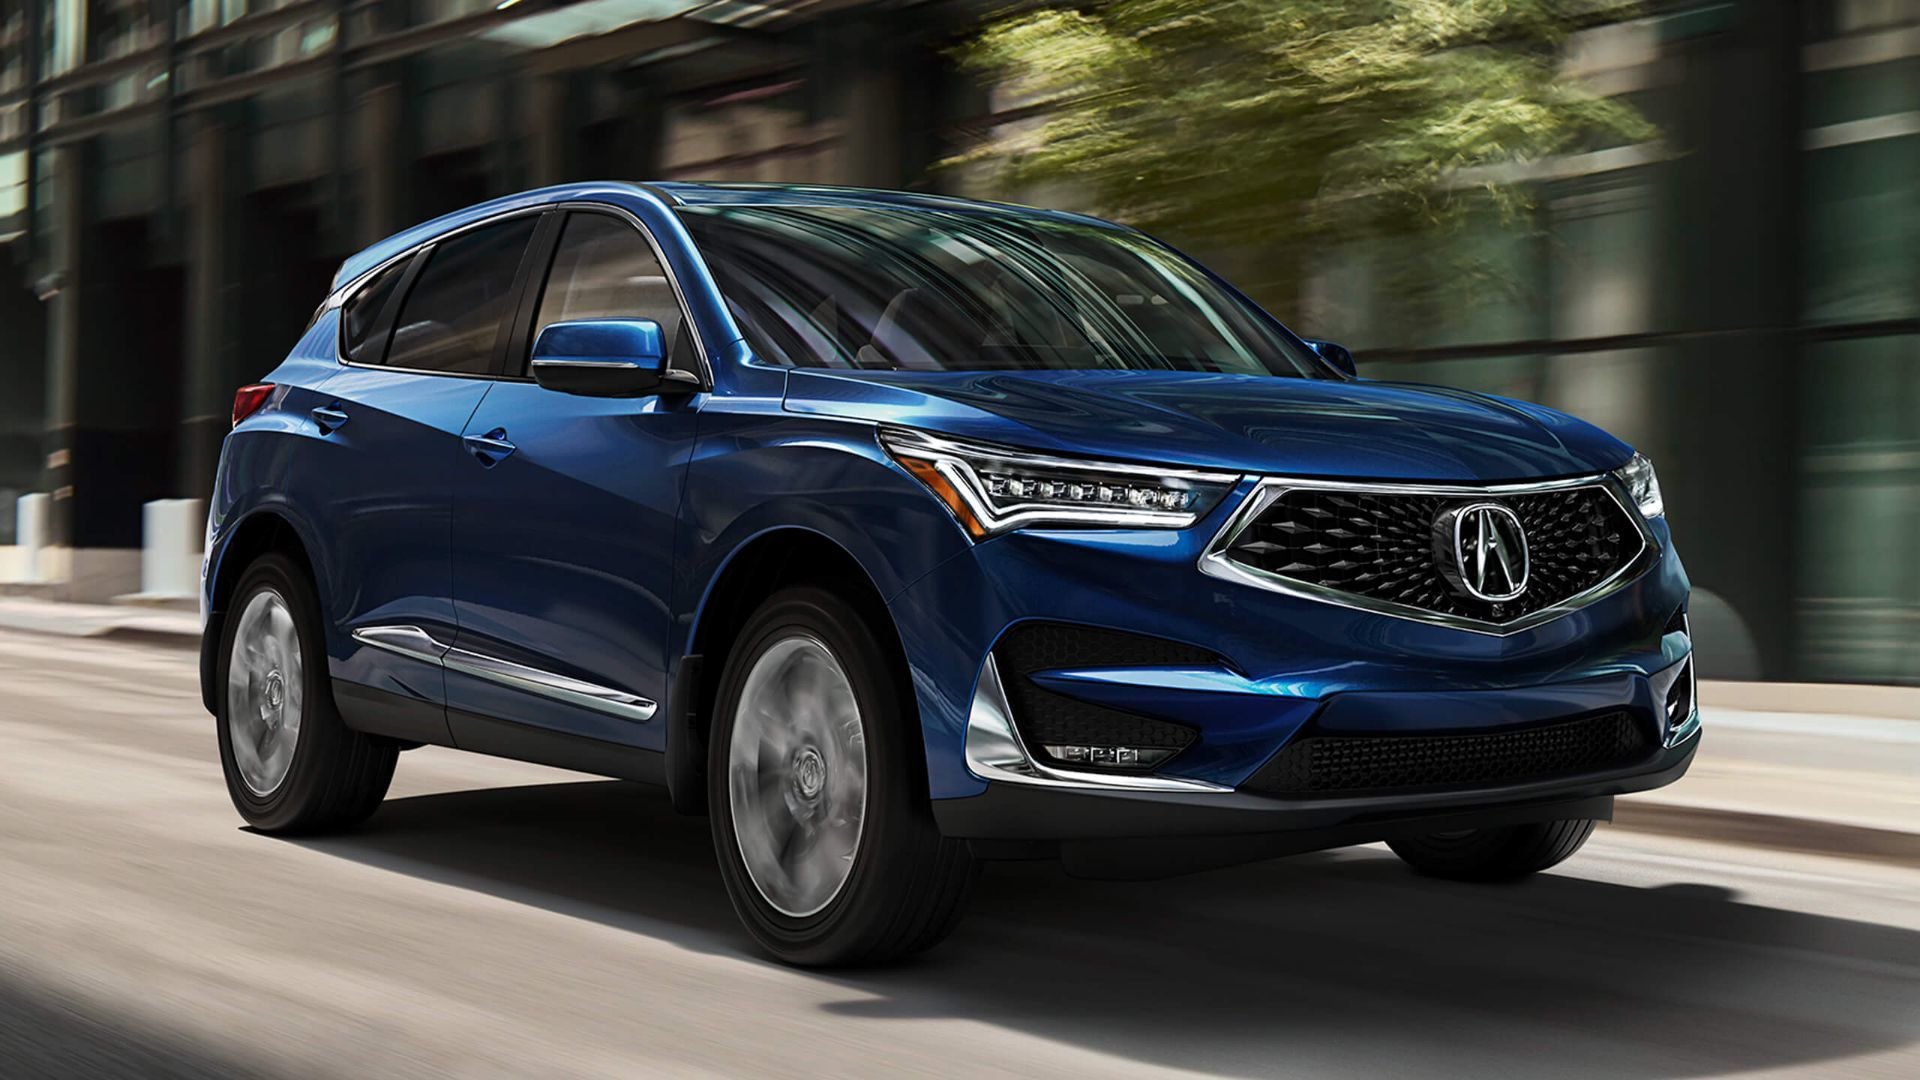 The 2020 Acura RDX: A Look Into the Future